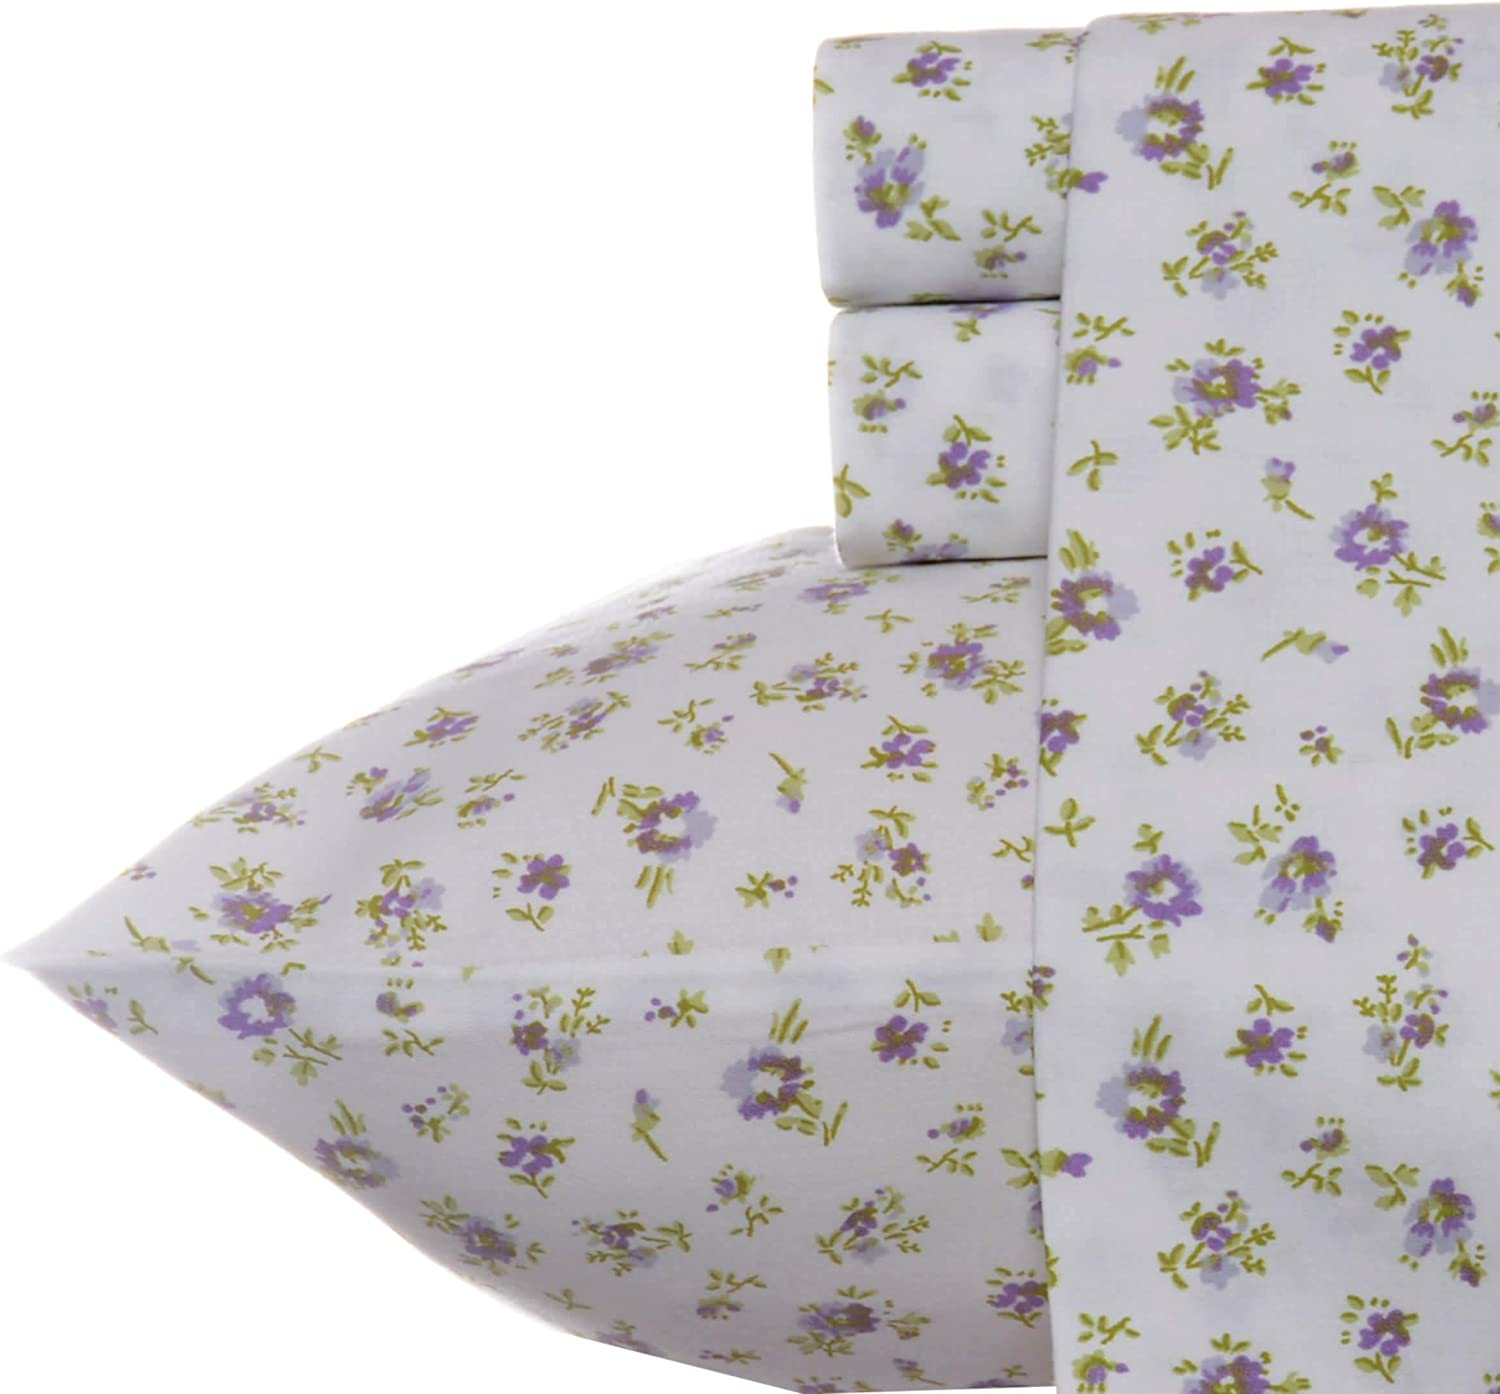 Laura Ashley Home - Sateen Collection - Sheet Set - 100% Cotton, Silky Smooth & Luminous Sheen, Wrinkle-Resistant Bedding, Queen, Petite Fleur